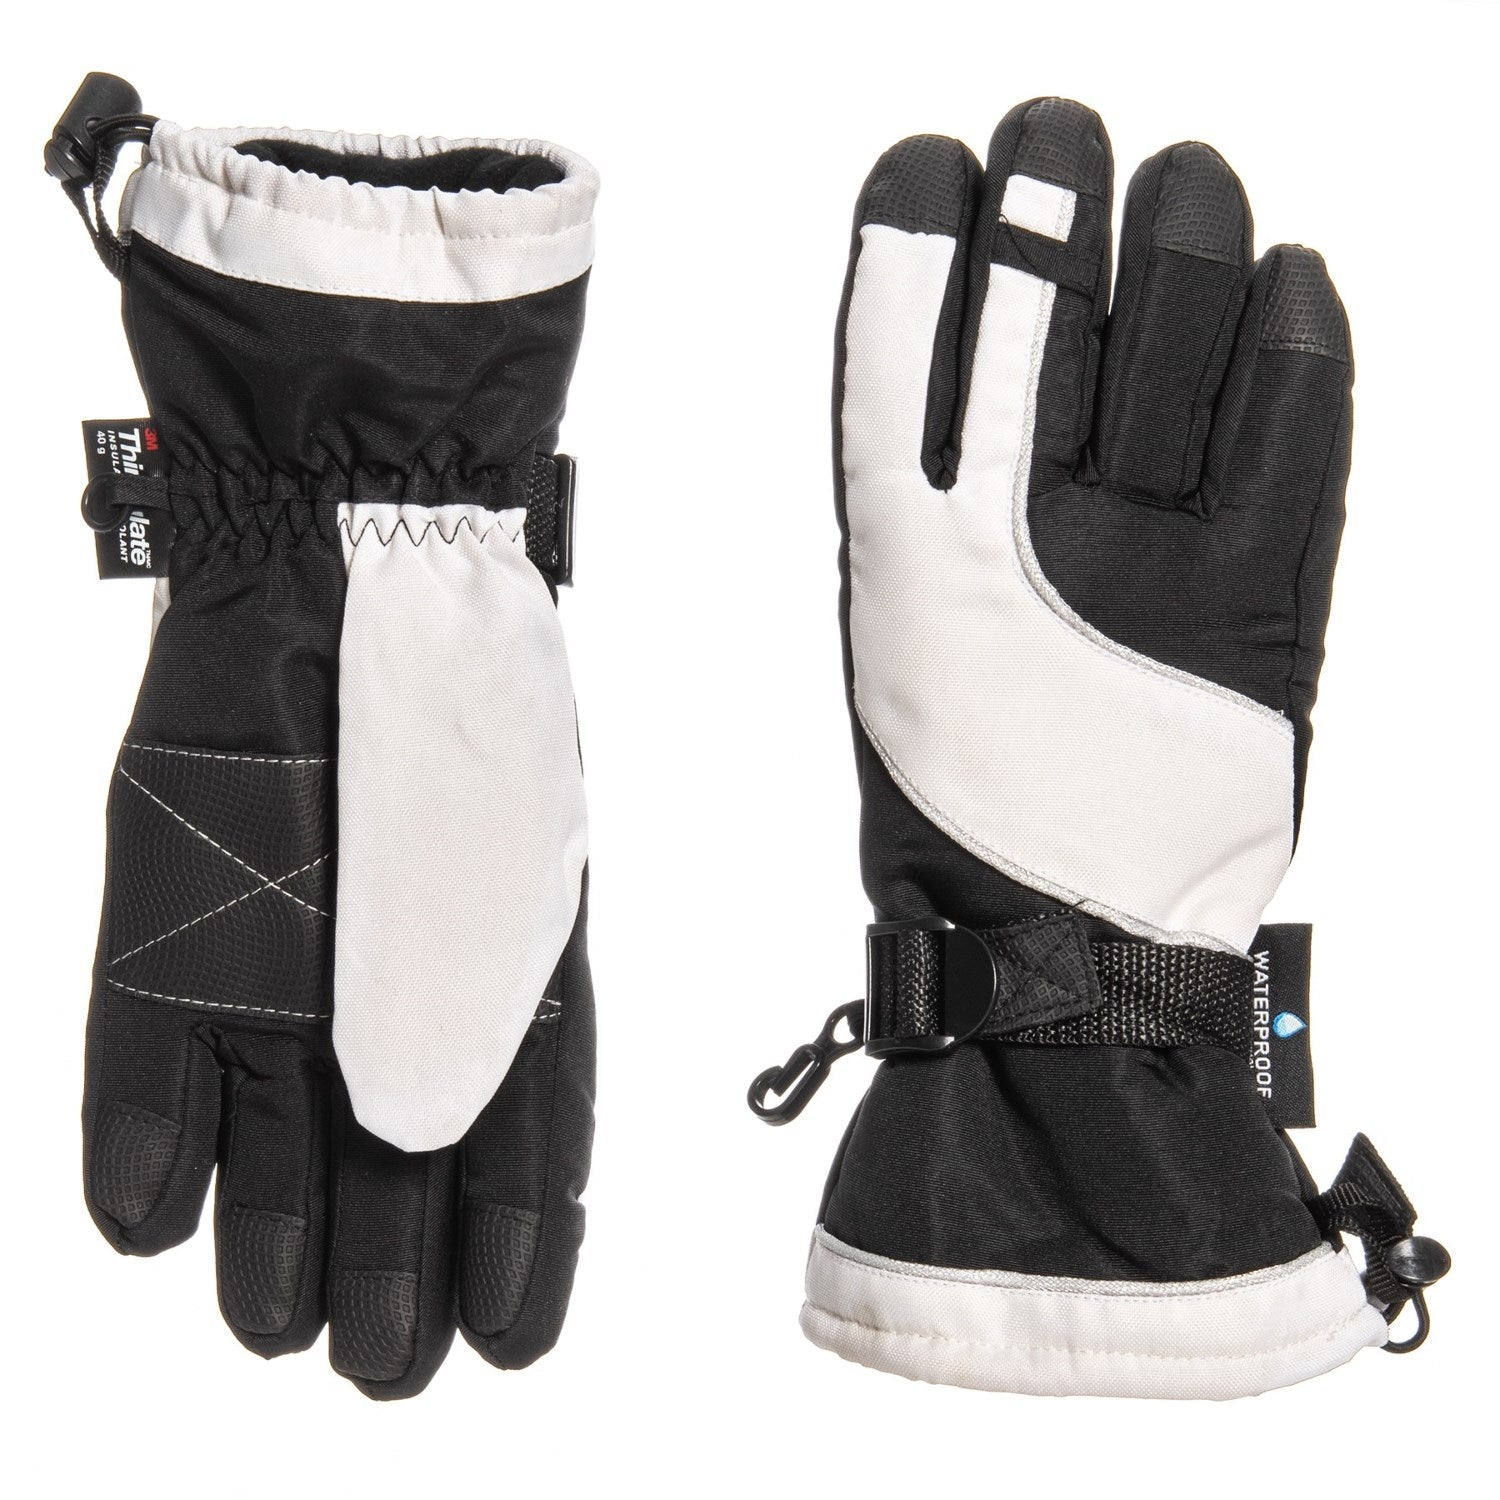 Grand Sierra Oxford Bec Tech Snowboard Gloves Waterproof, Insulated Black White Kid Youth O/S 7-16